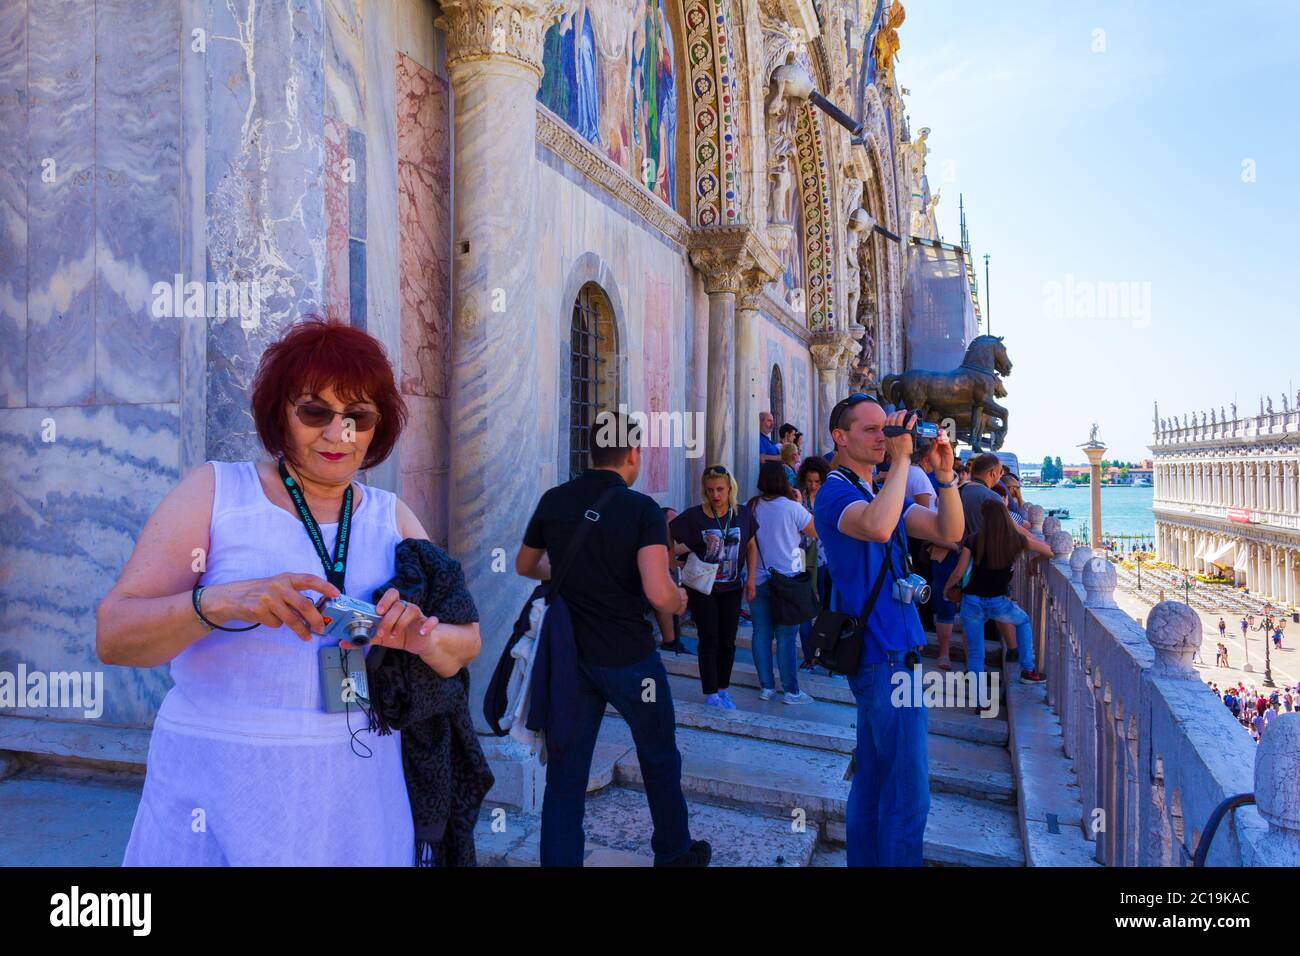 Tourists enjoying the view from the St Mark`s Basilica balcony, Metropolitan city of Venice,Italy,June 7th 2016 Stock Photo